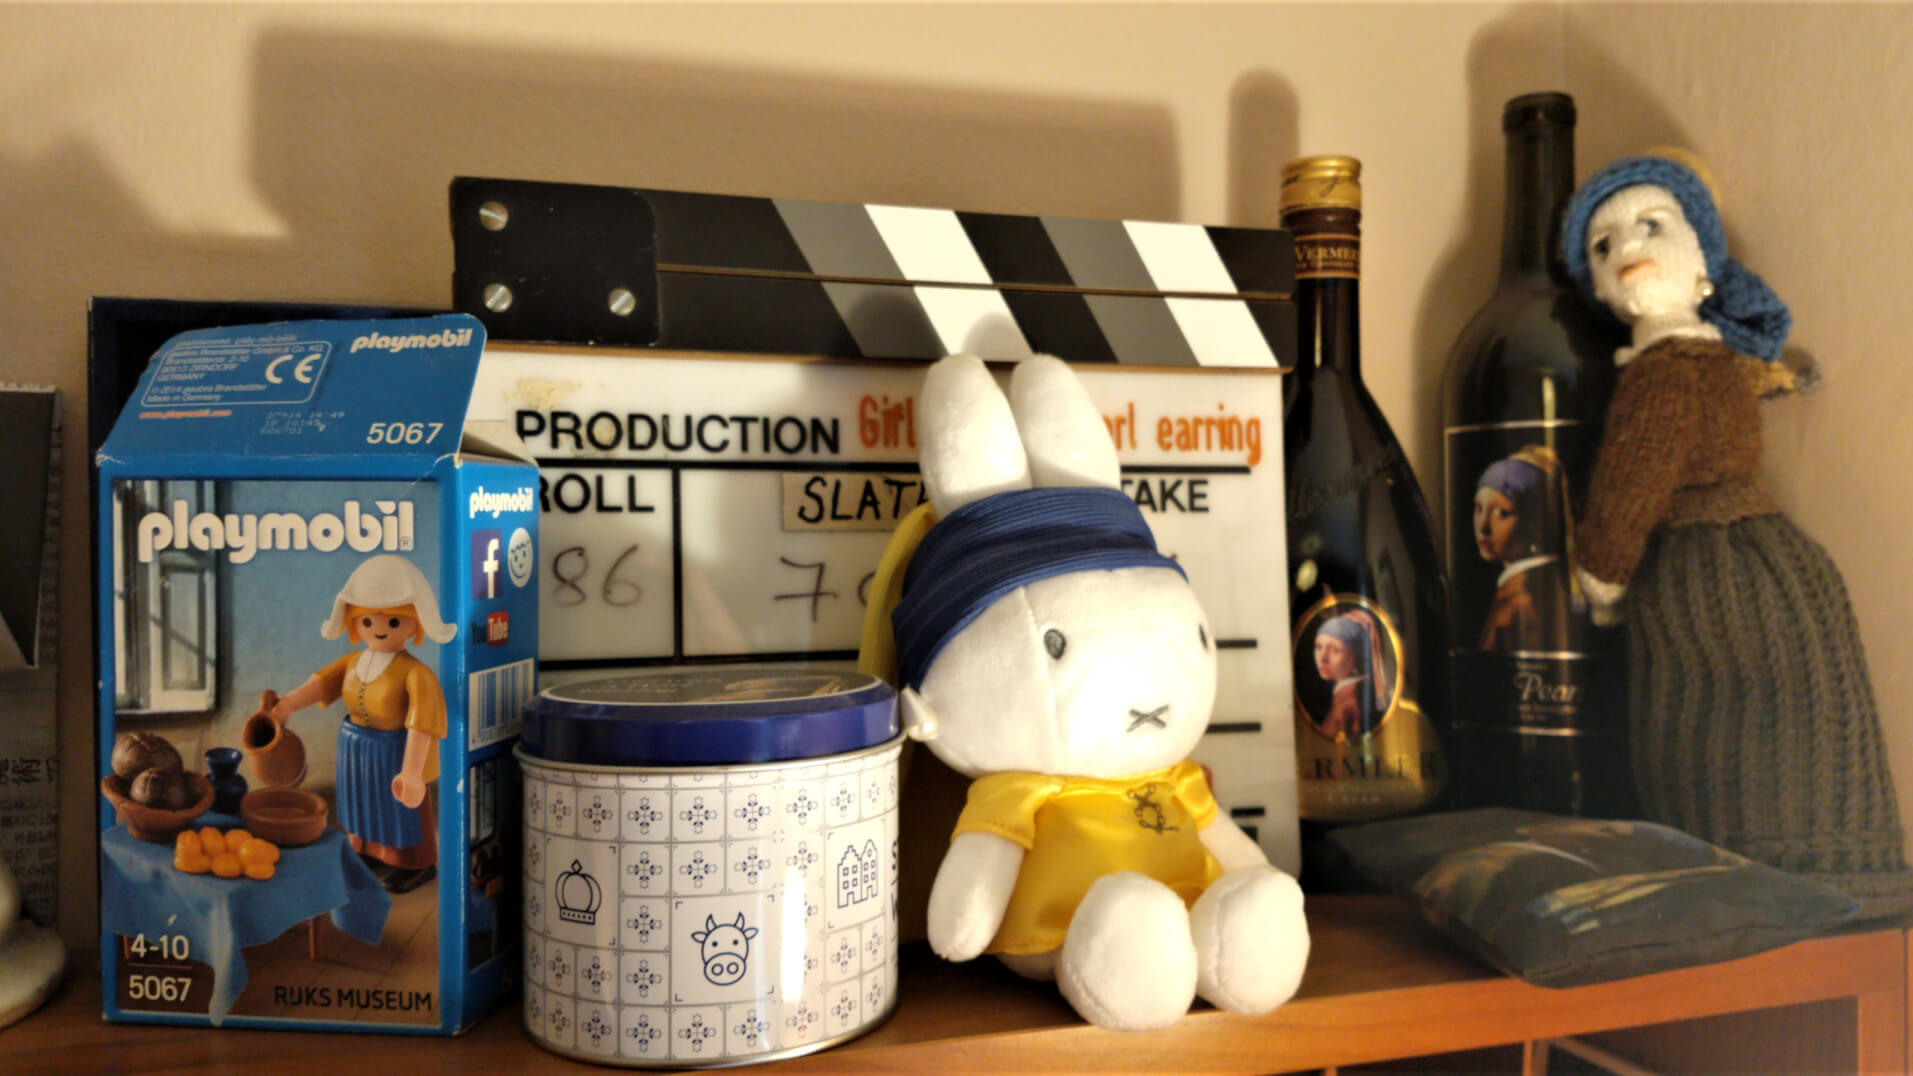 Tracy Chevalier Studio - Girl with a Pearl Earring Memorabilia & Miffy Doll